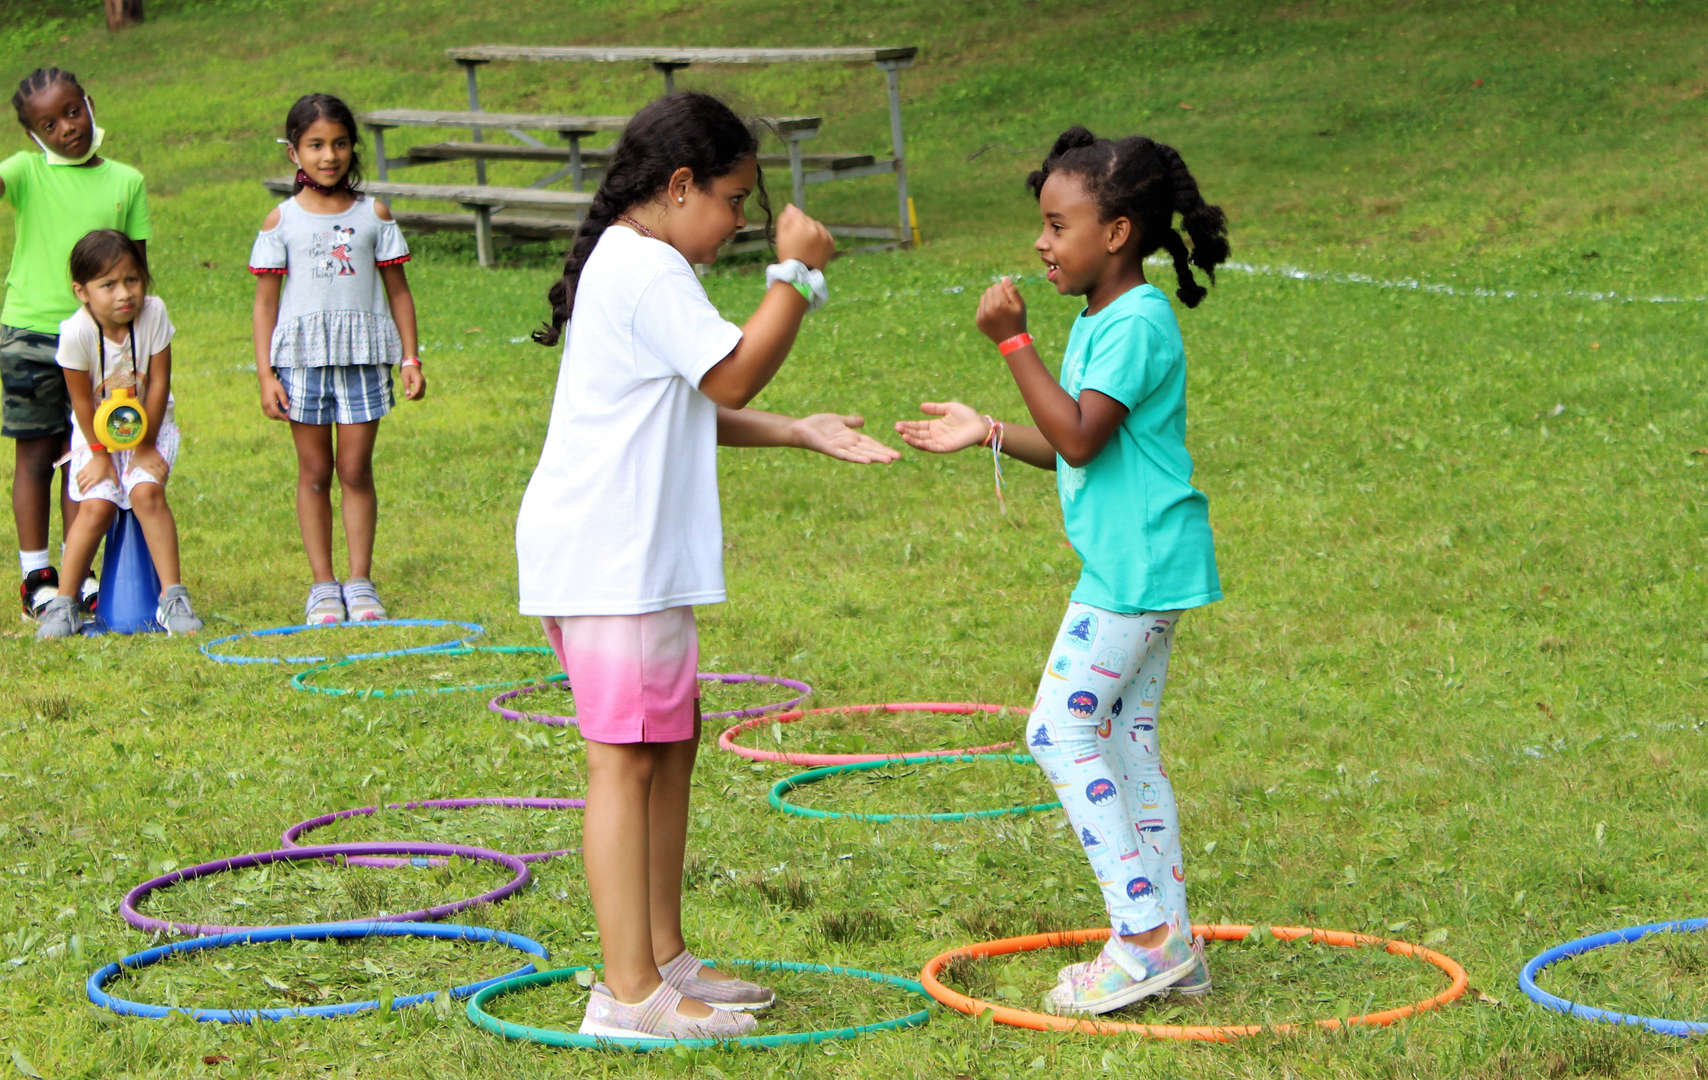 Two girls square off in a game that involved hula hoops, hopping and the game rock, paper, scissors.